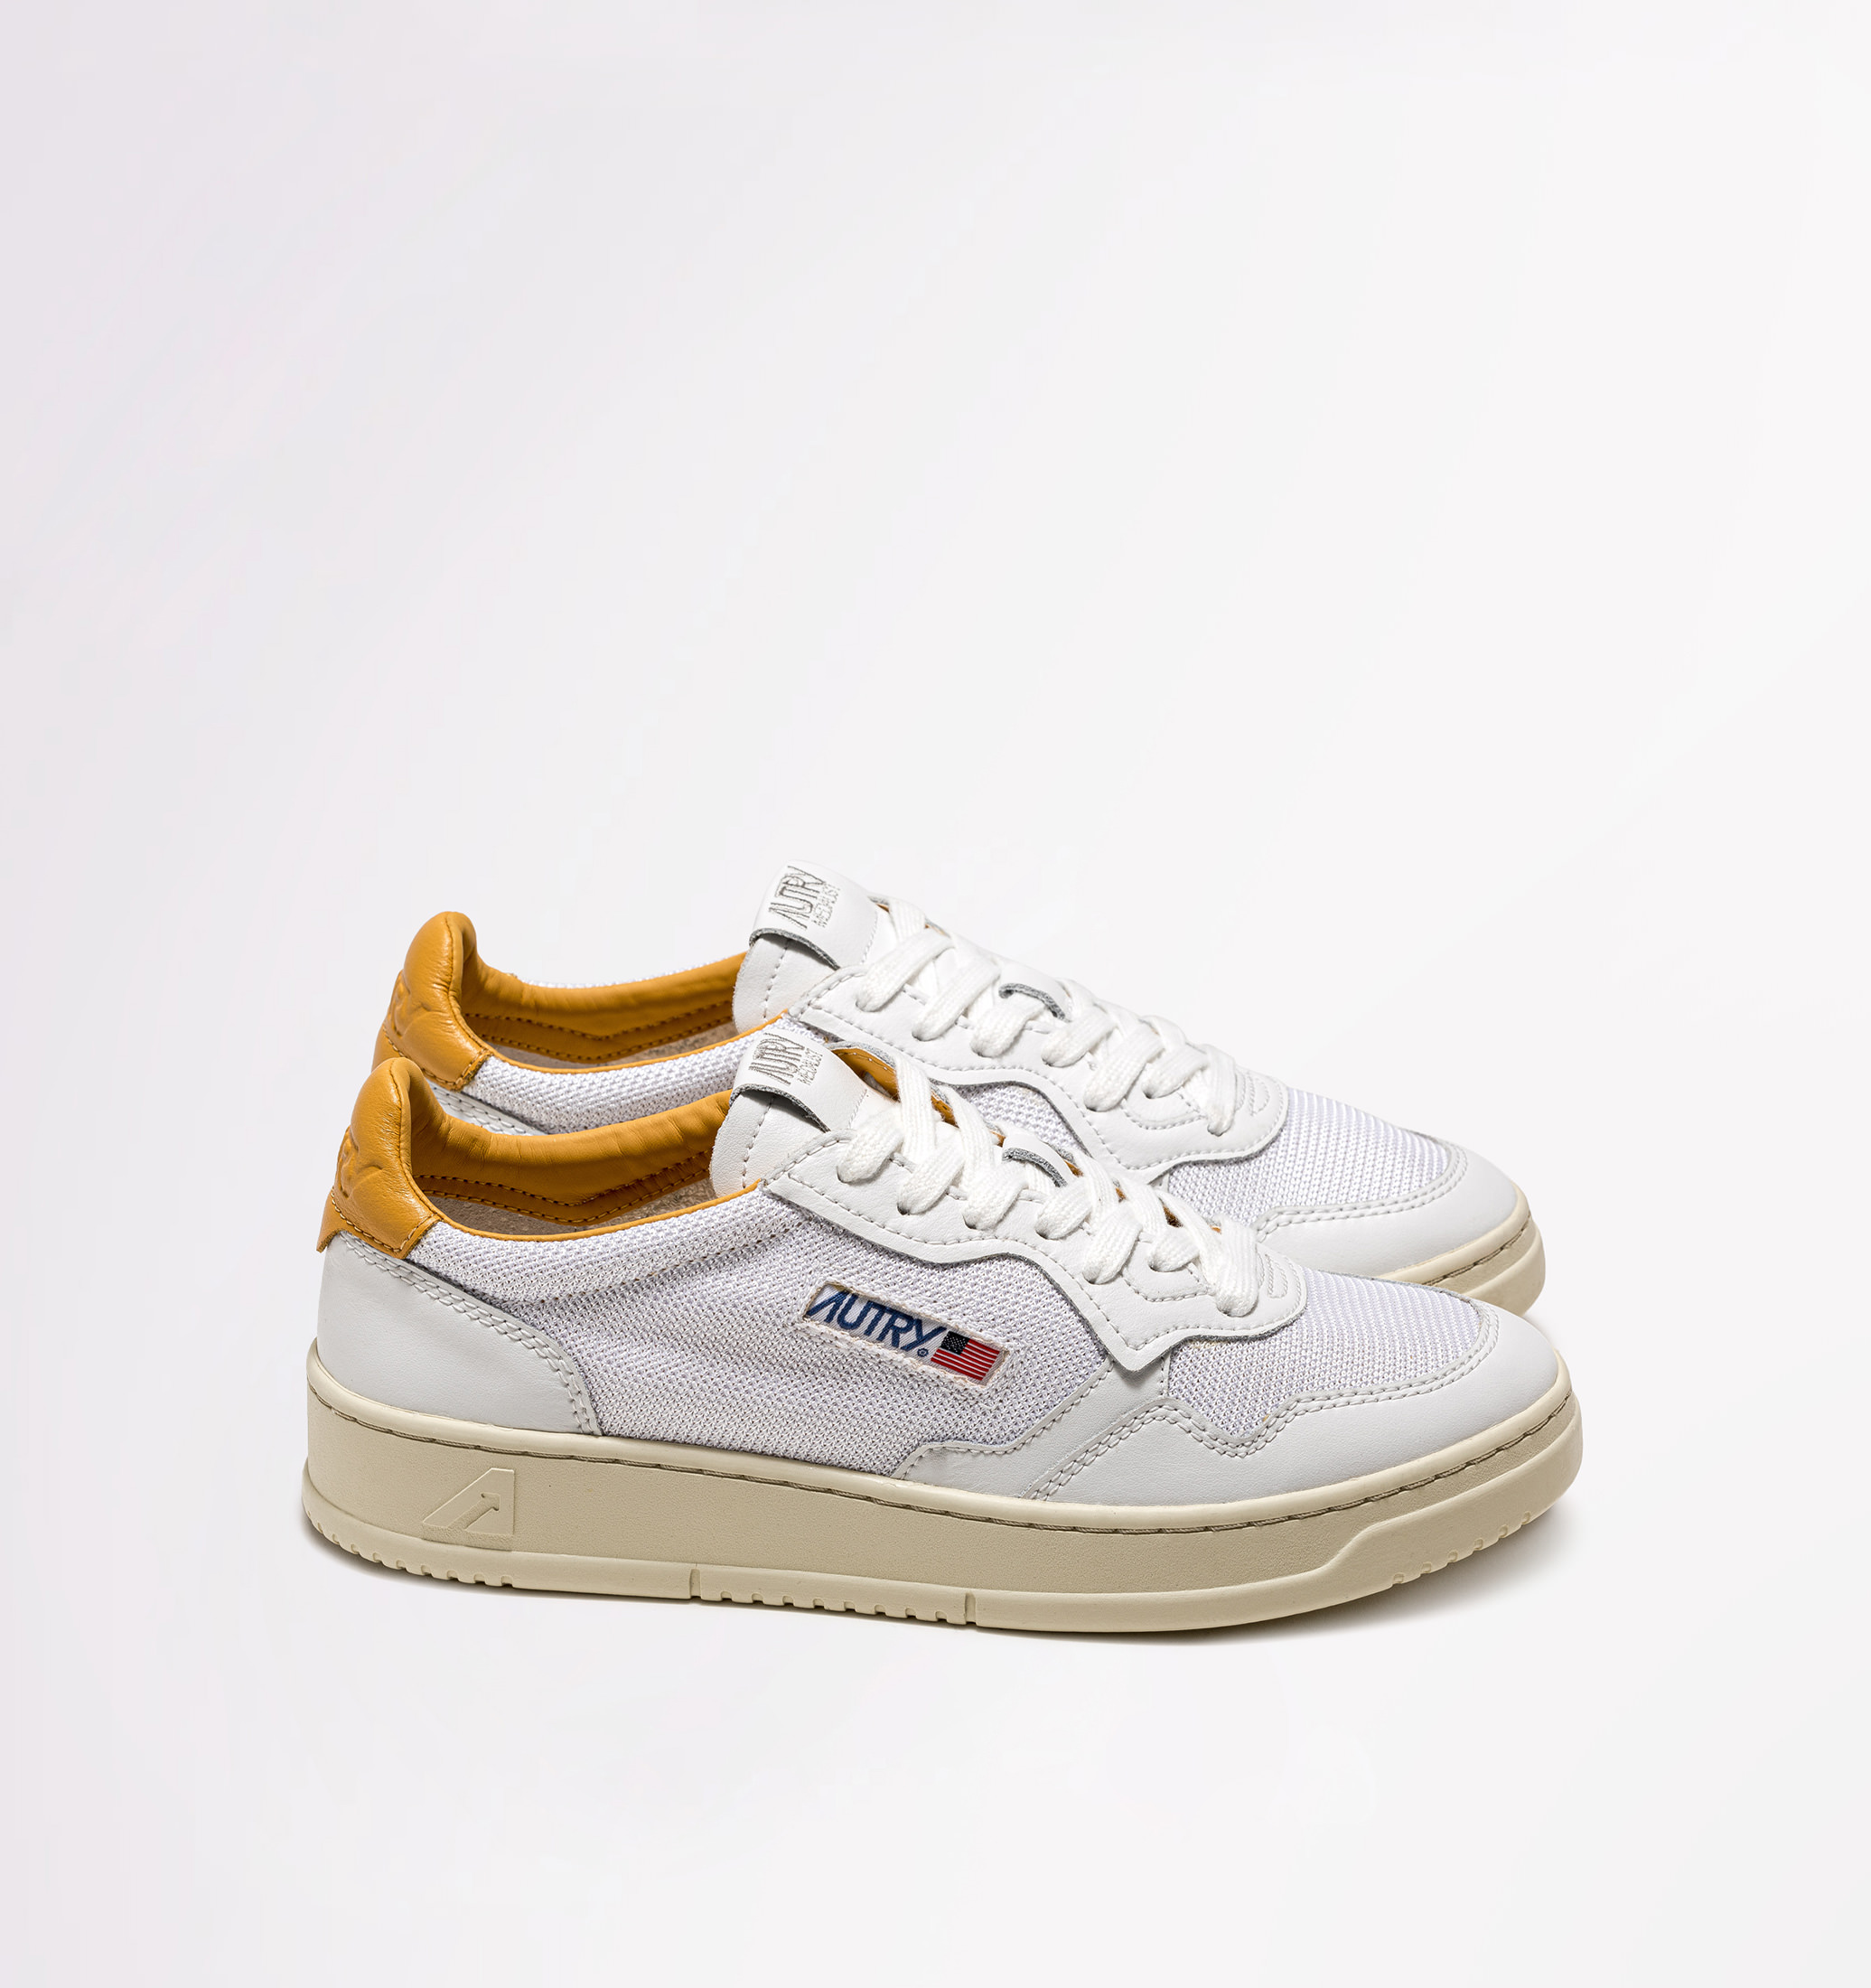 autry-01-low-leather-kevlar-white-gold-side-both